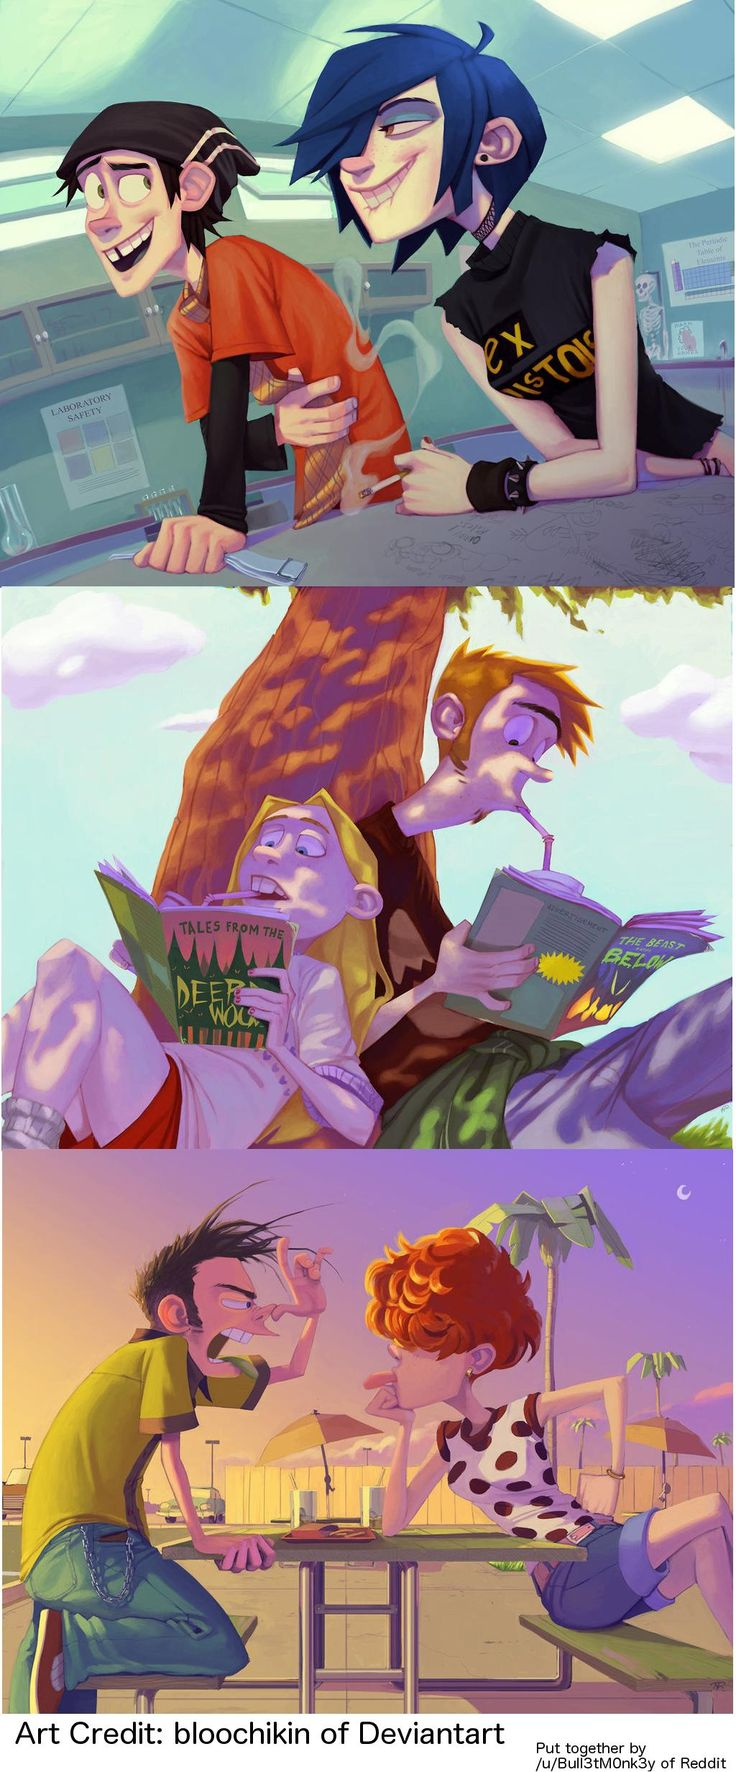 Ed, Edd, and Eddy all grown up and their relationships with the Kanker sisters May, Marie, and Lee. Loved this cartoon!